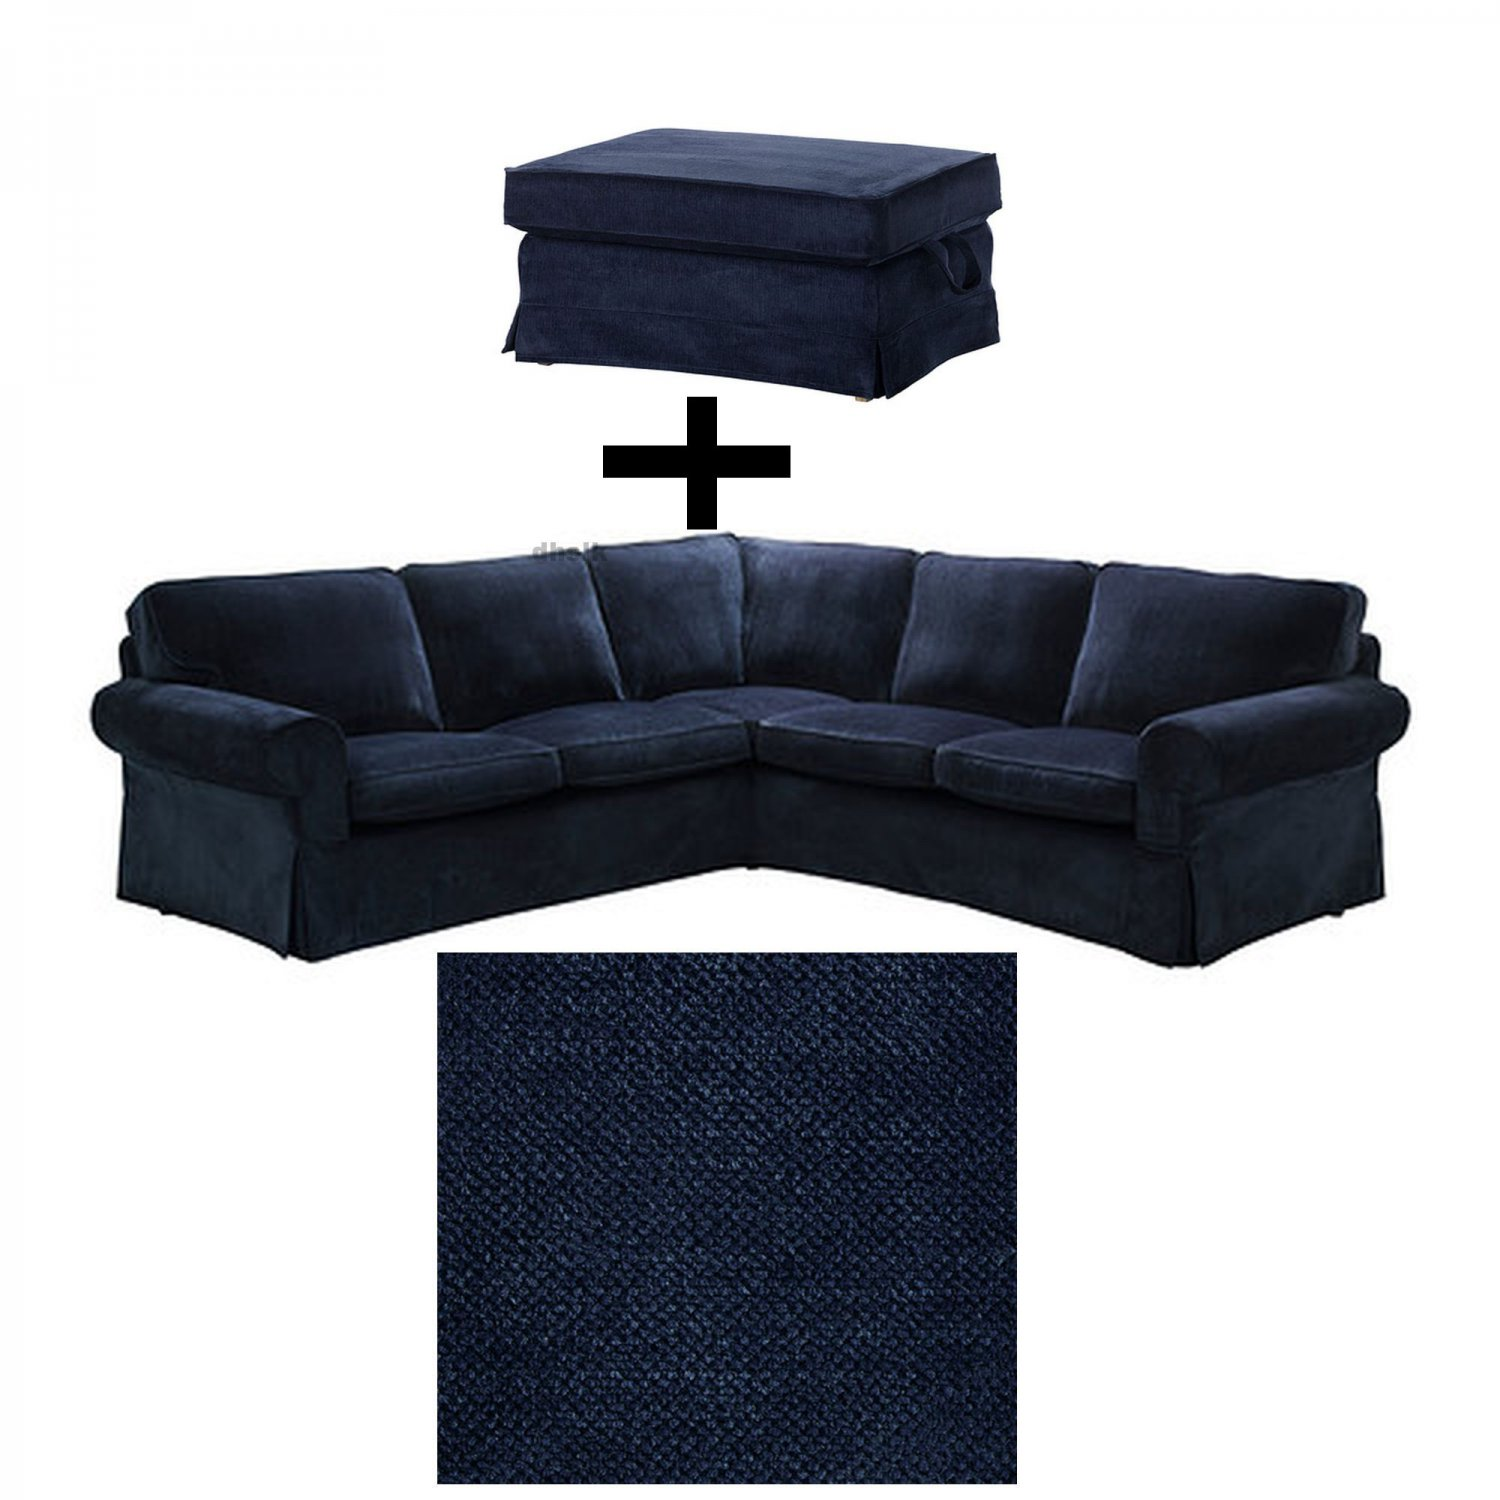 Ikea Ektorp 2 2 Corner Sofa And Bromma Footstool Cover Slipcover Set Vellinge Dark Blue